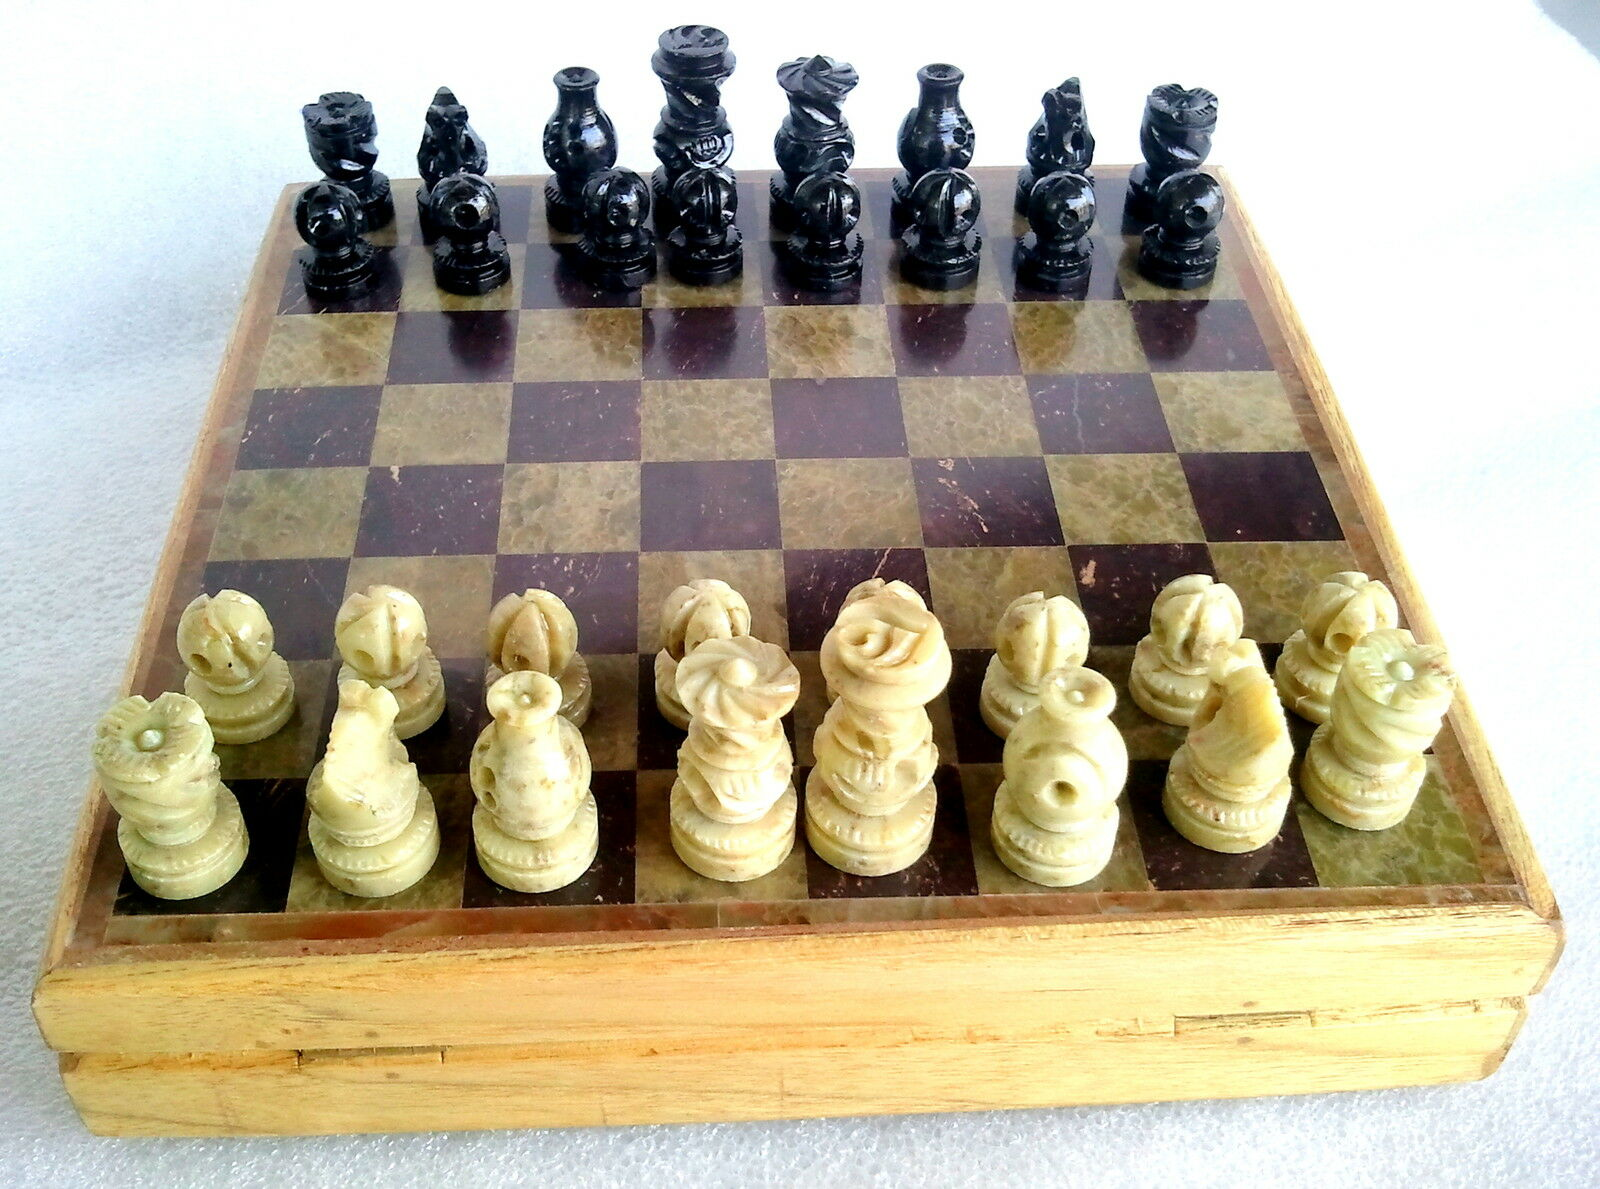 8 x 8 collectible indian marble chess game board set stone crafted pieces ebay - Granite chess pieces ...